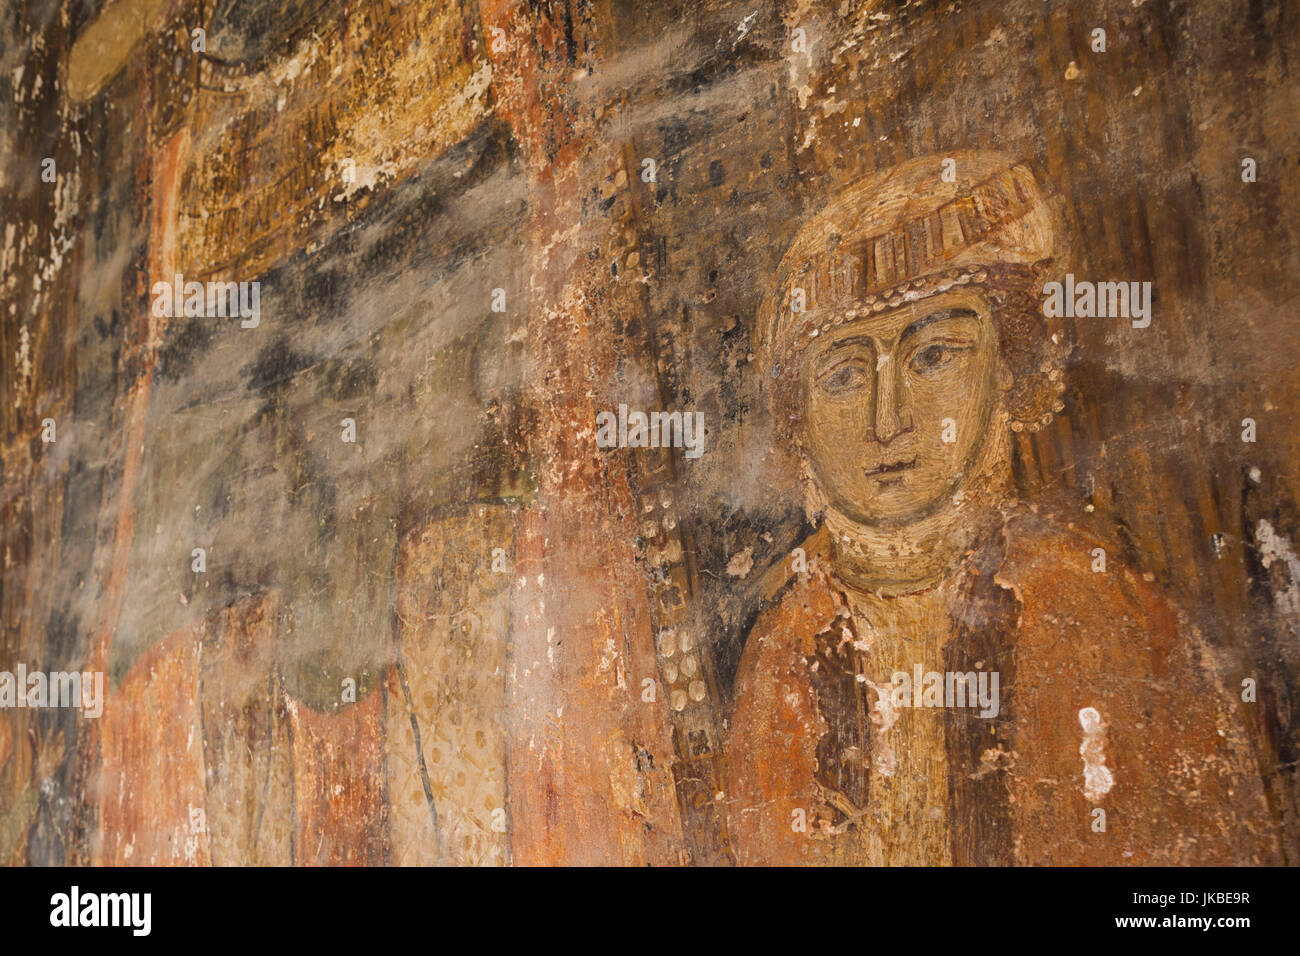 Greece, West Macedonia Region, Kastoria, Taxiarches Mitropoleos church, built in 9th century AD, frescoes - Stock Image